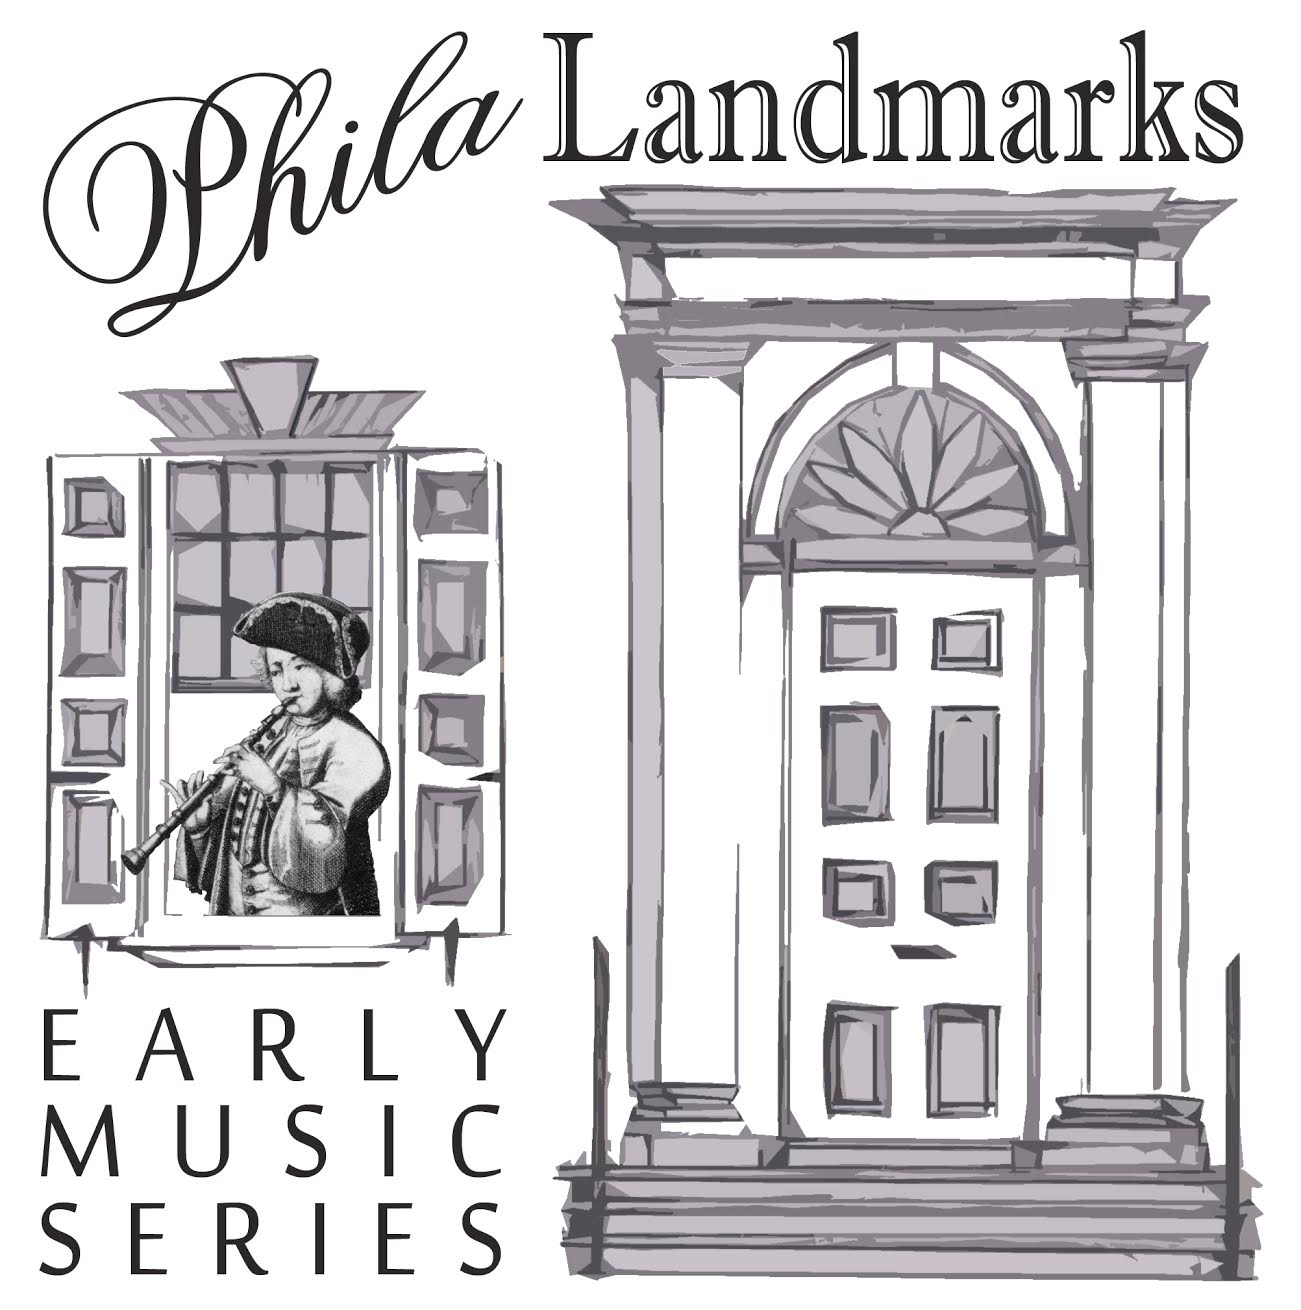 PhilaLandmarks Early Music